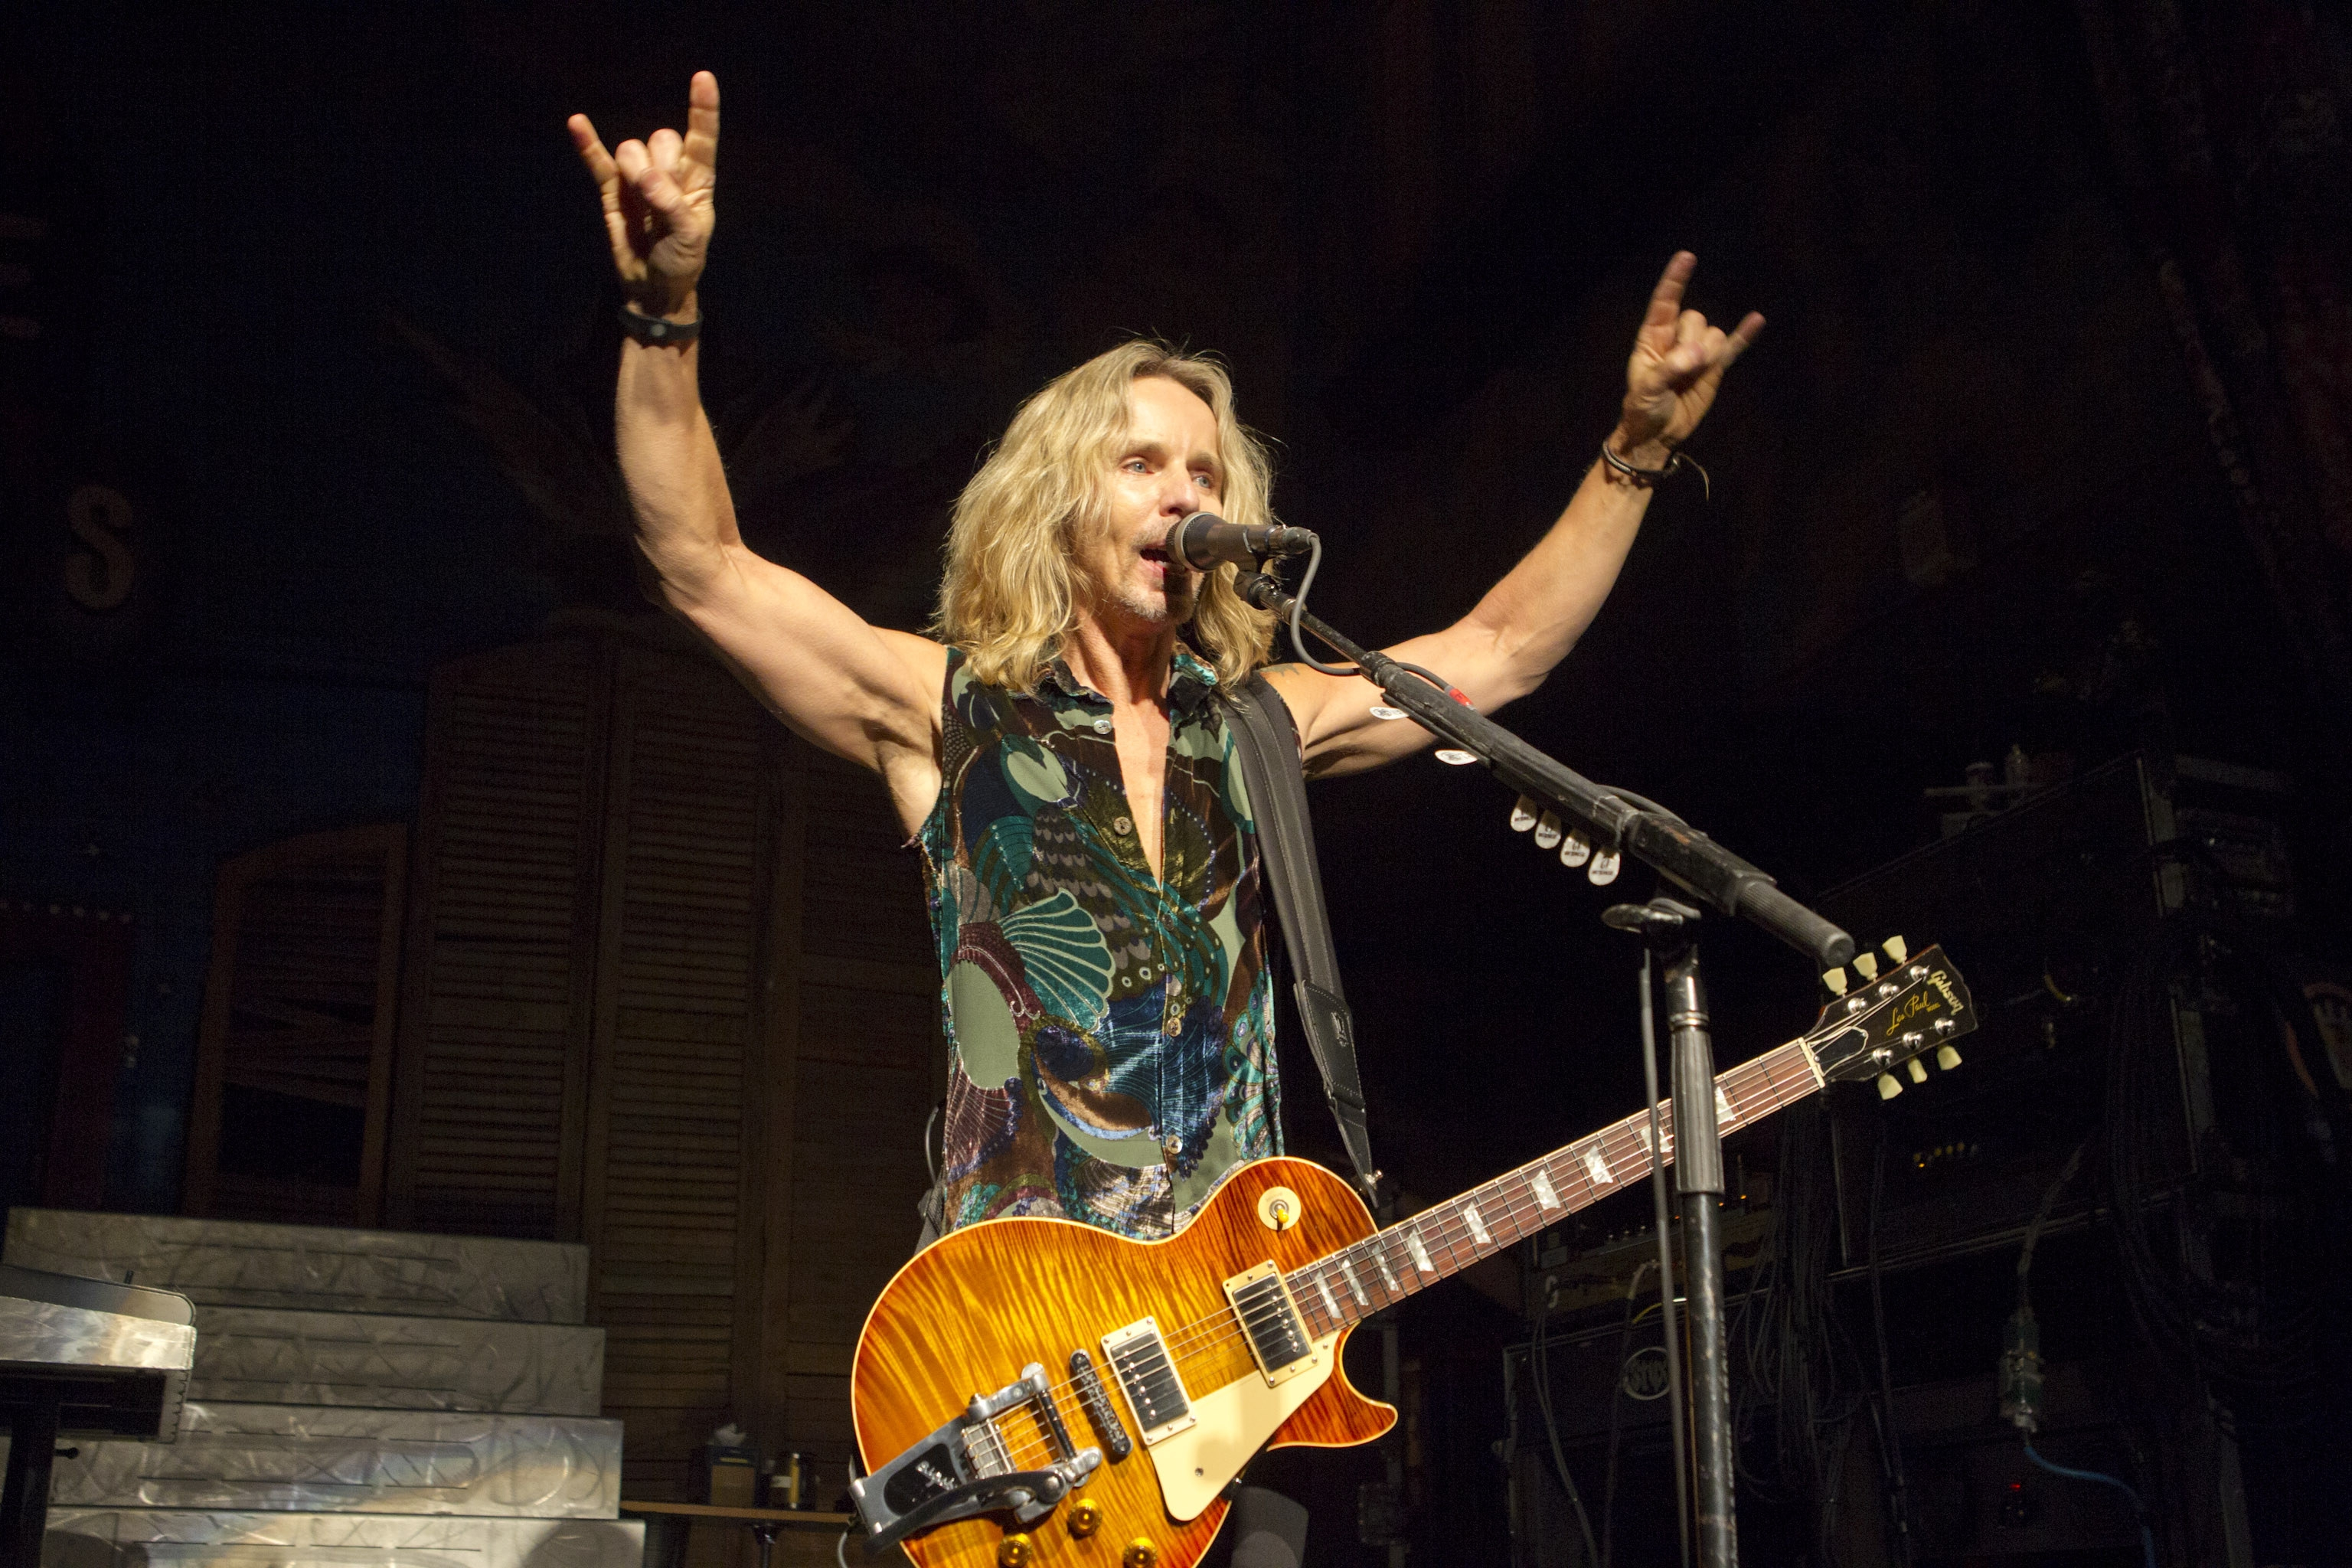 Styx will take the stage Aug. 16 for the Tuesdays in the Park series at Artpark in Lewiston.